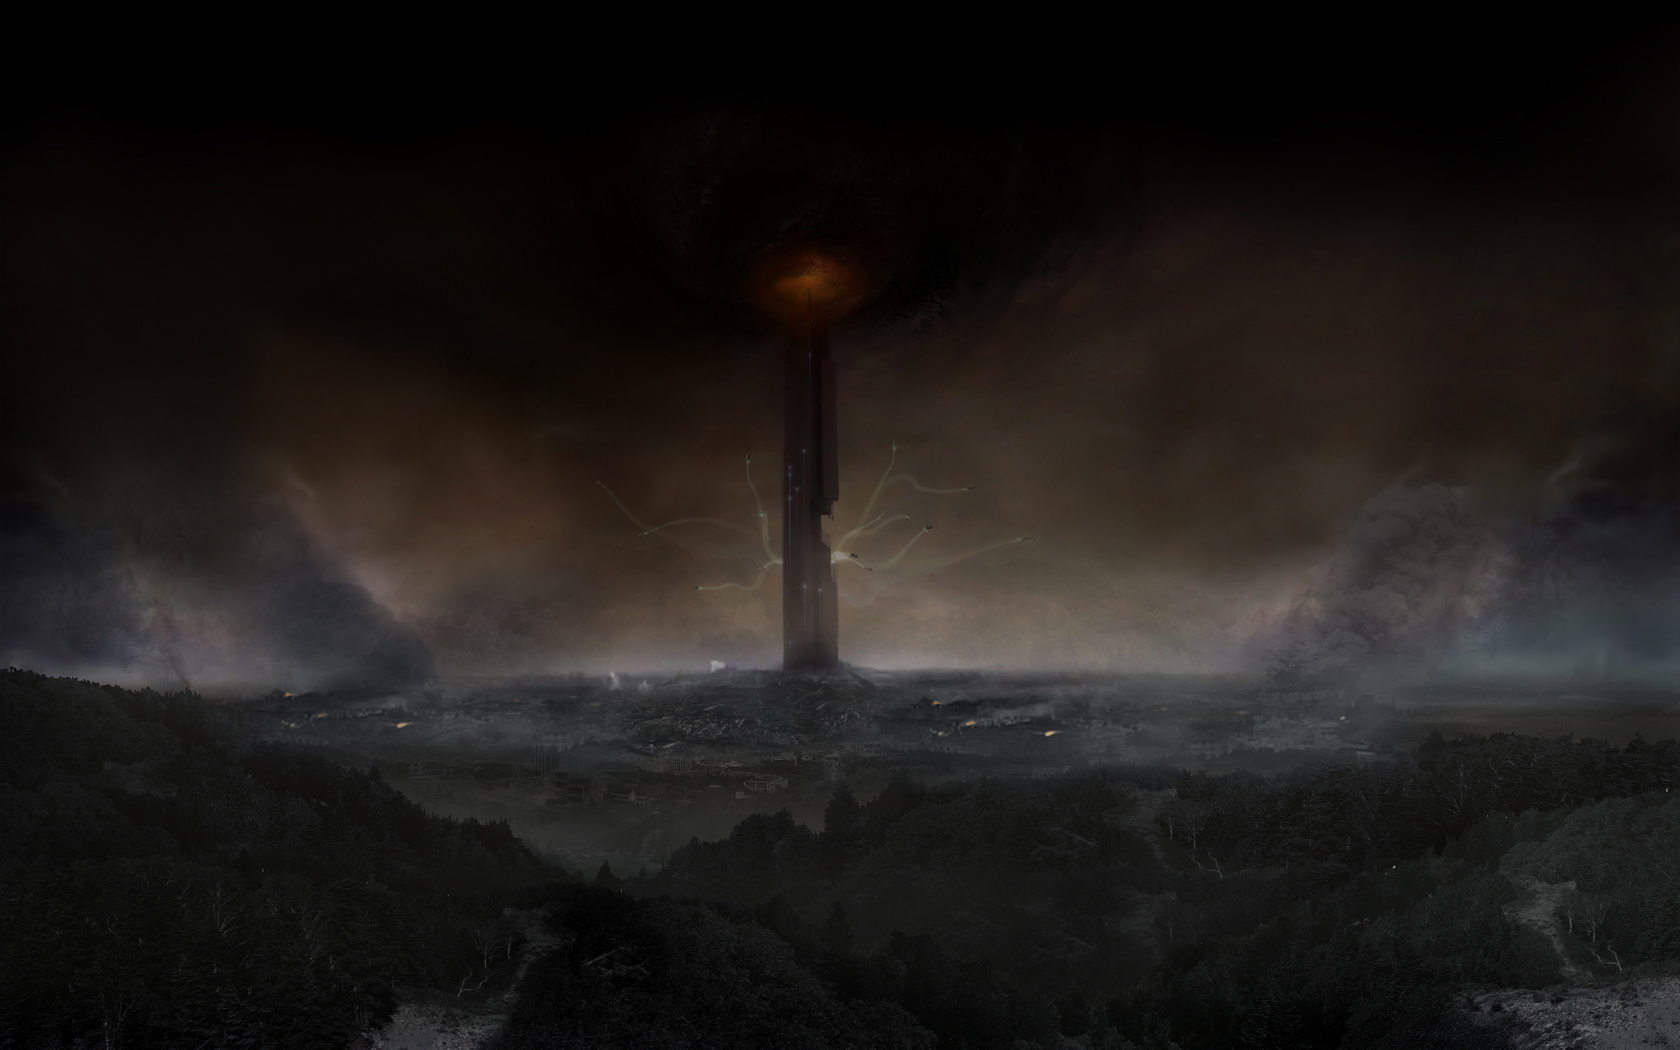 Half Life 2 Wallpaper and Background Image 1680x1050 ID312257 1680x1050